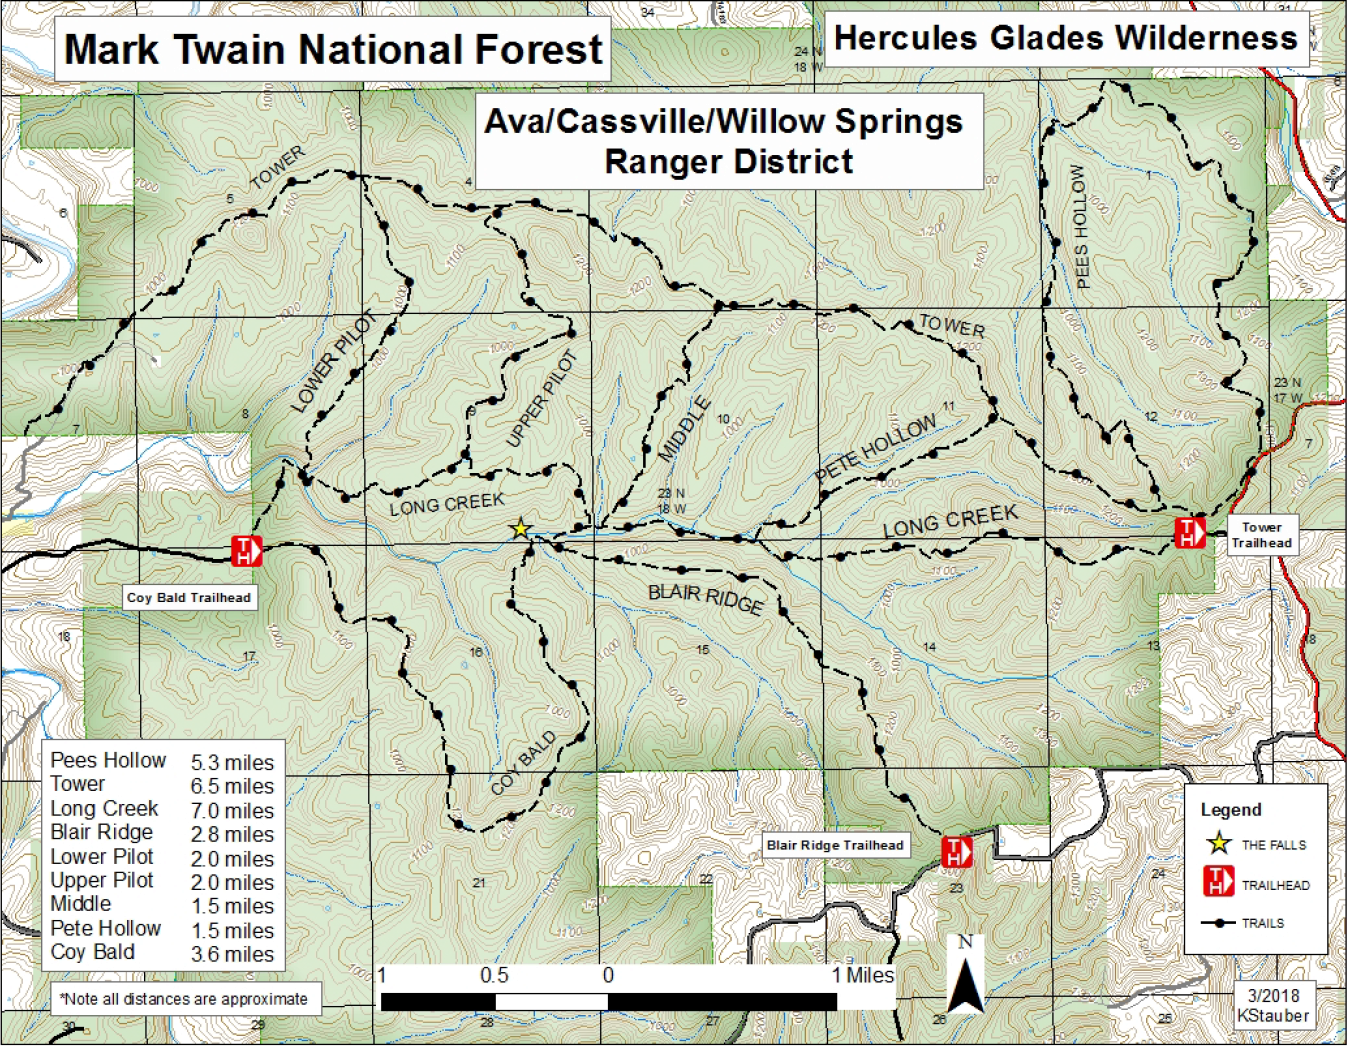 Trail Map: Hercules Glades Wilderness - Ozarks Walkabout